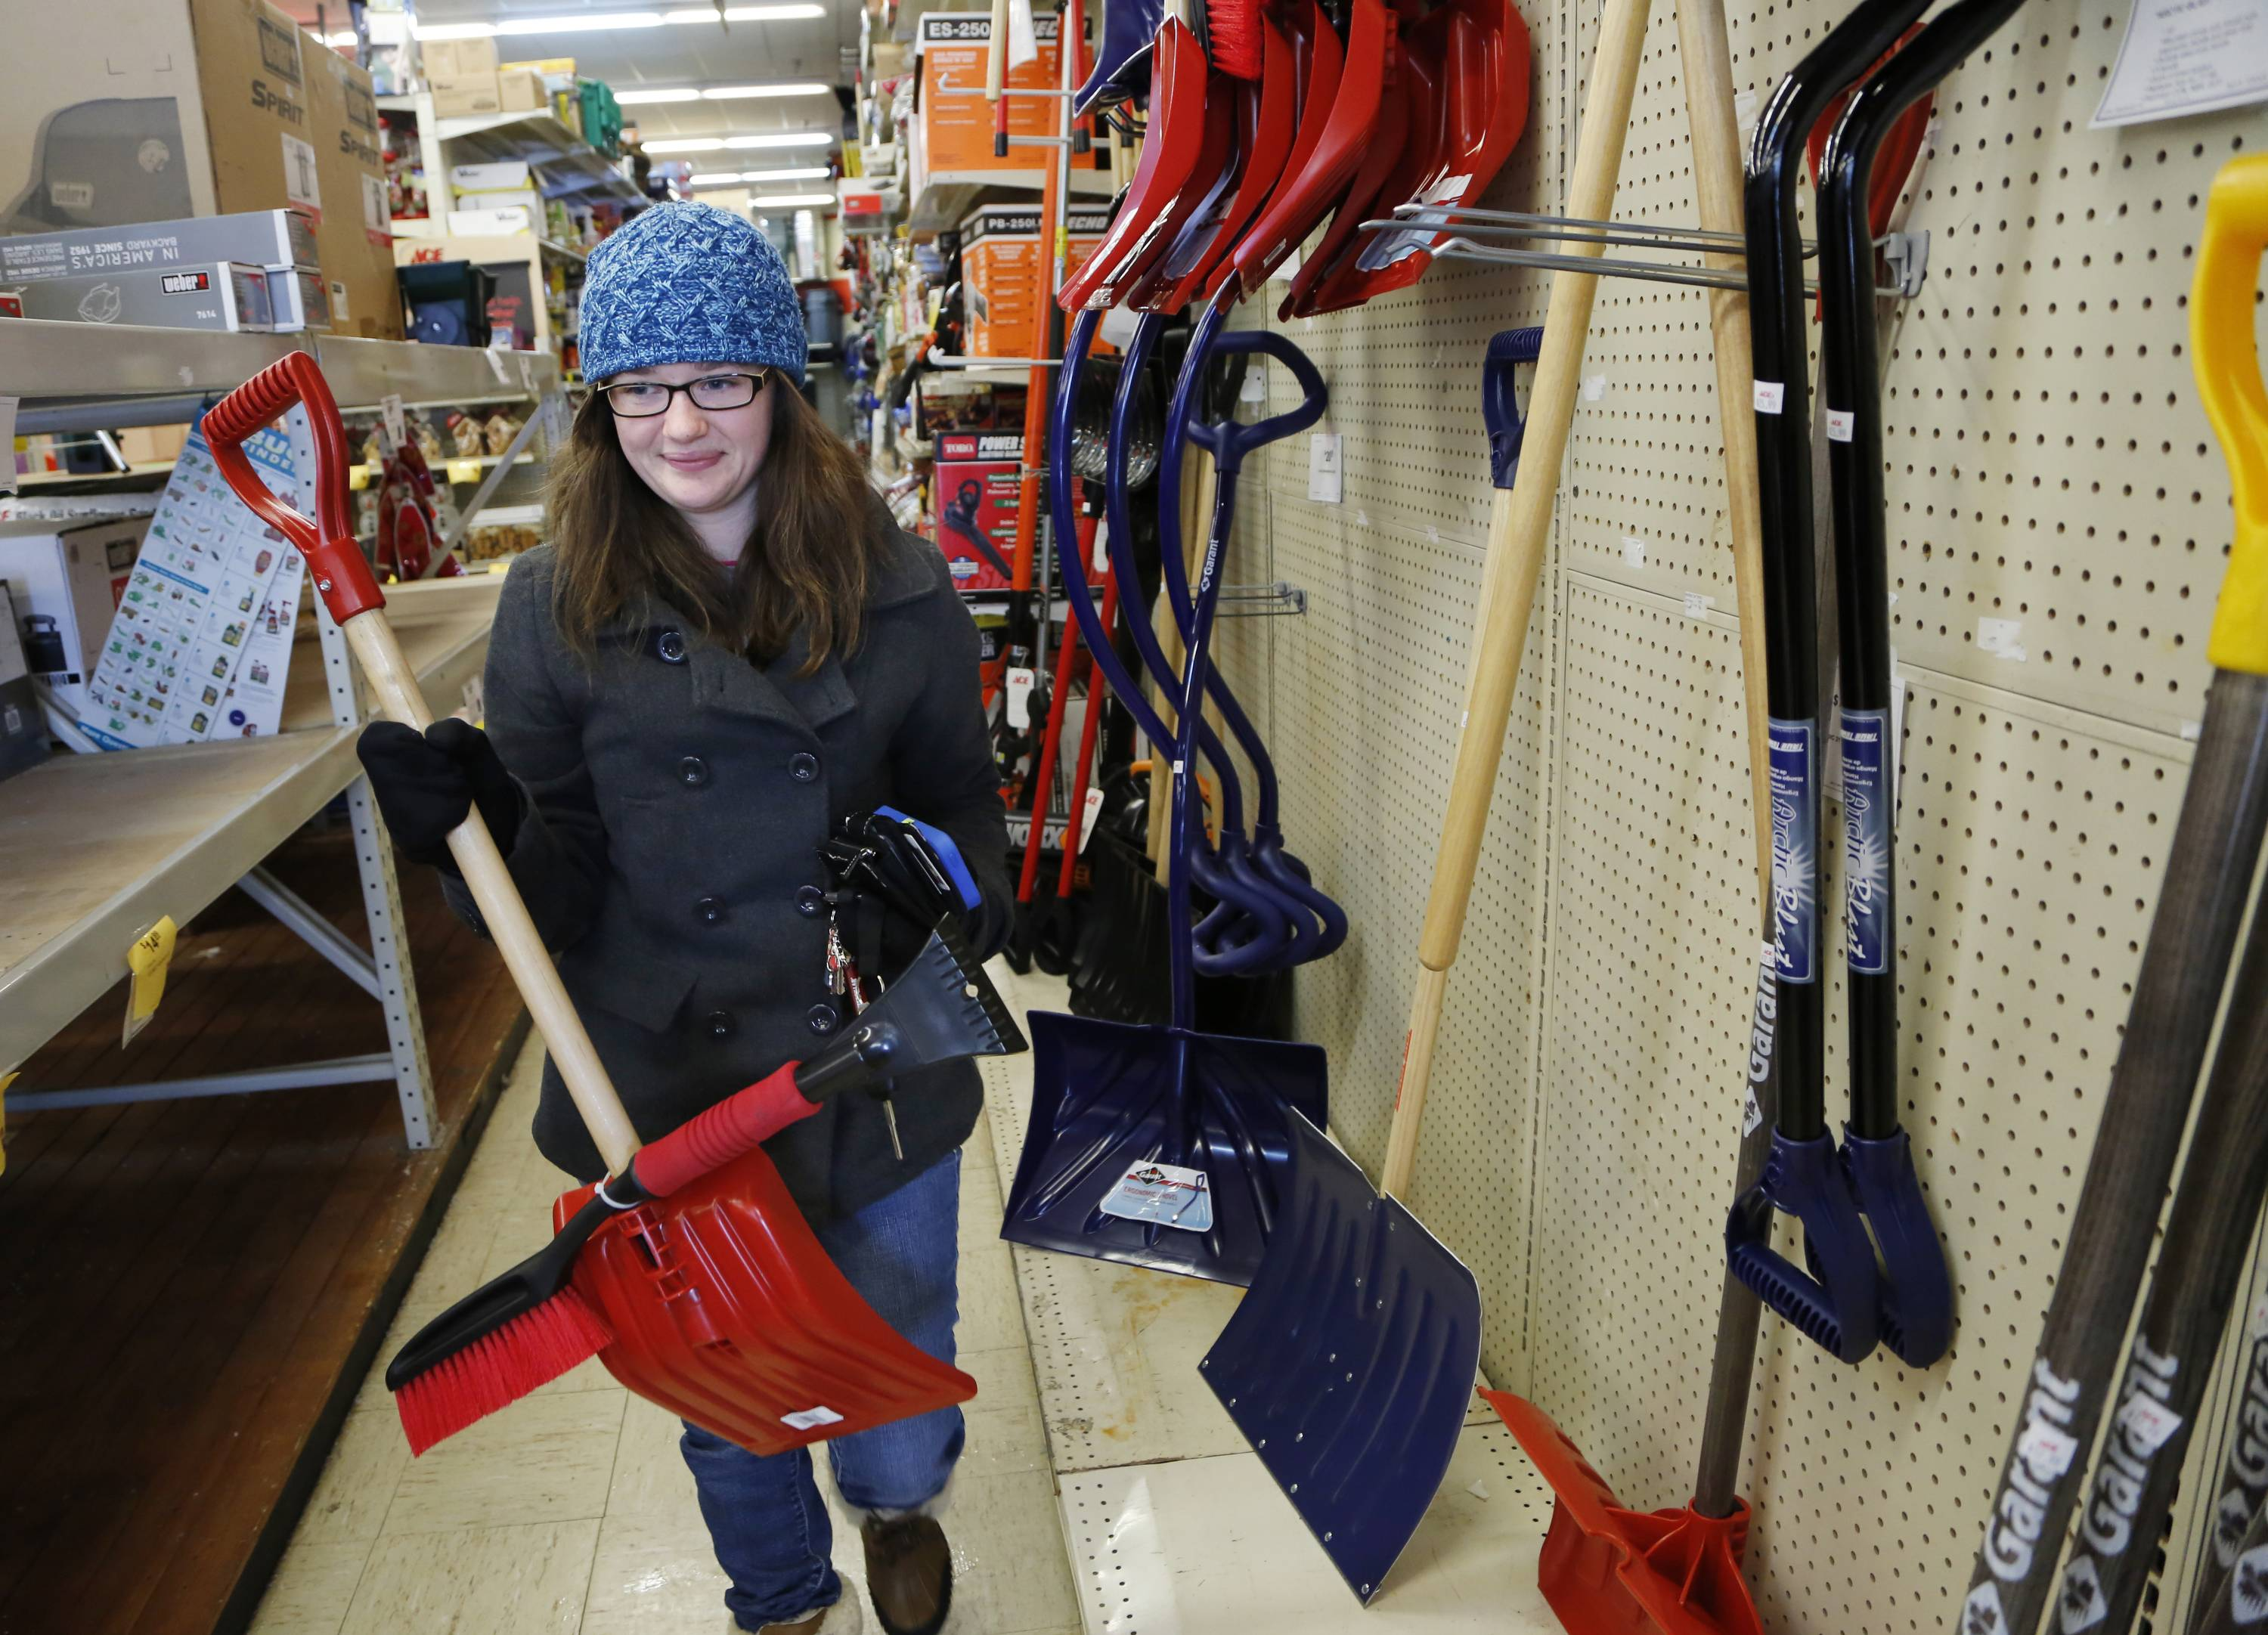 Coleen Riley purchases a snow shovel at Ace Hardware, in West Lafayette, Ind. Harsh winter weather has been rough for some businesses, but for a lucky few, it has meant more hard, cold cash. Ace Hardware is having its best winter in more than a decade selling snowblowers and shovels.